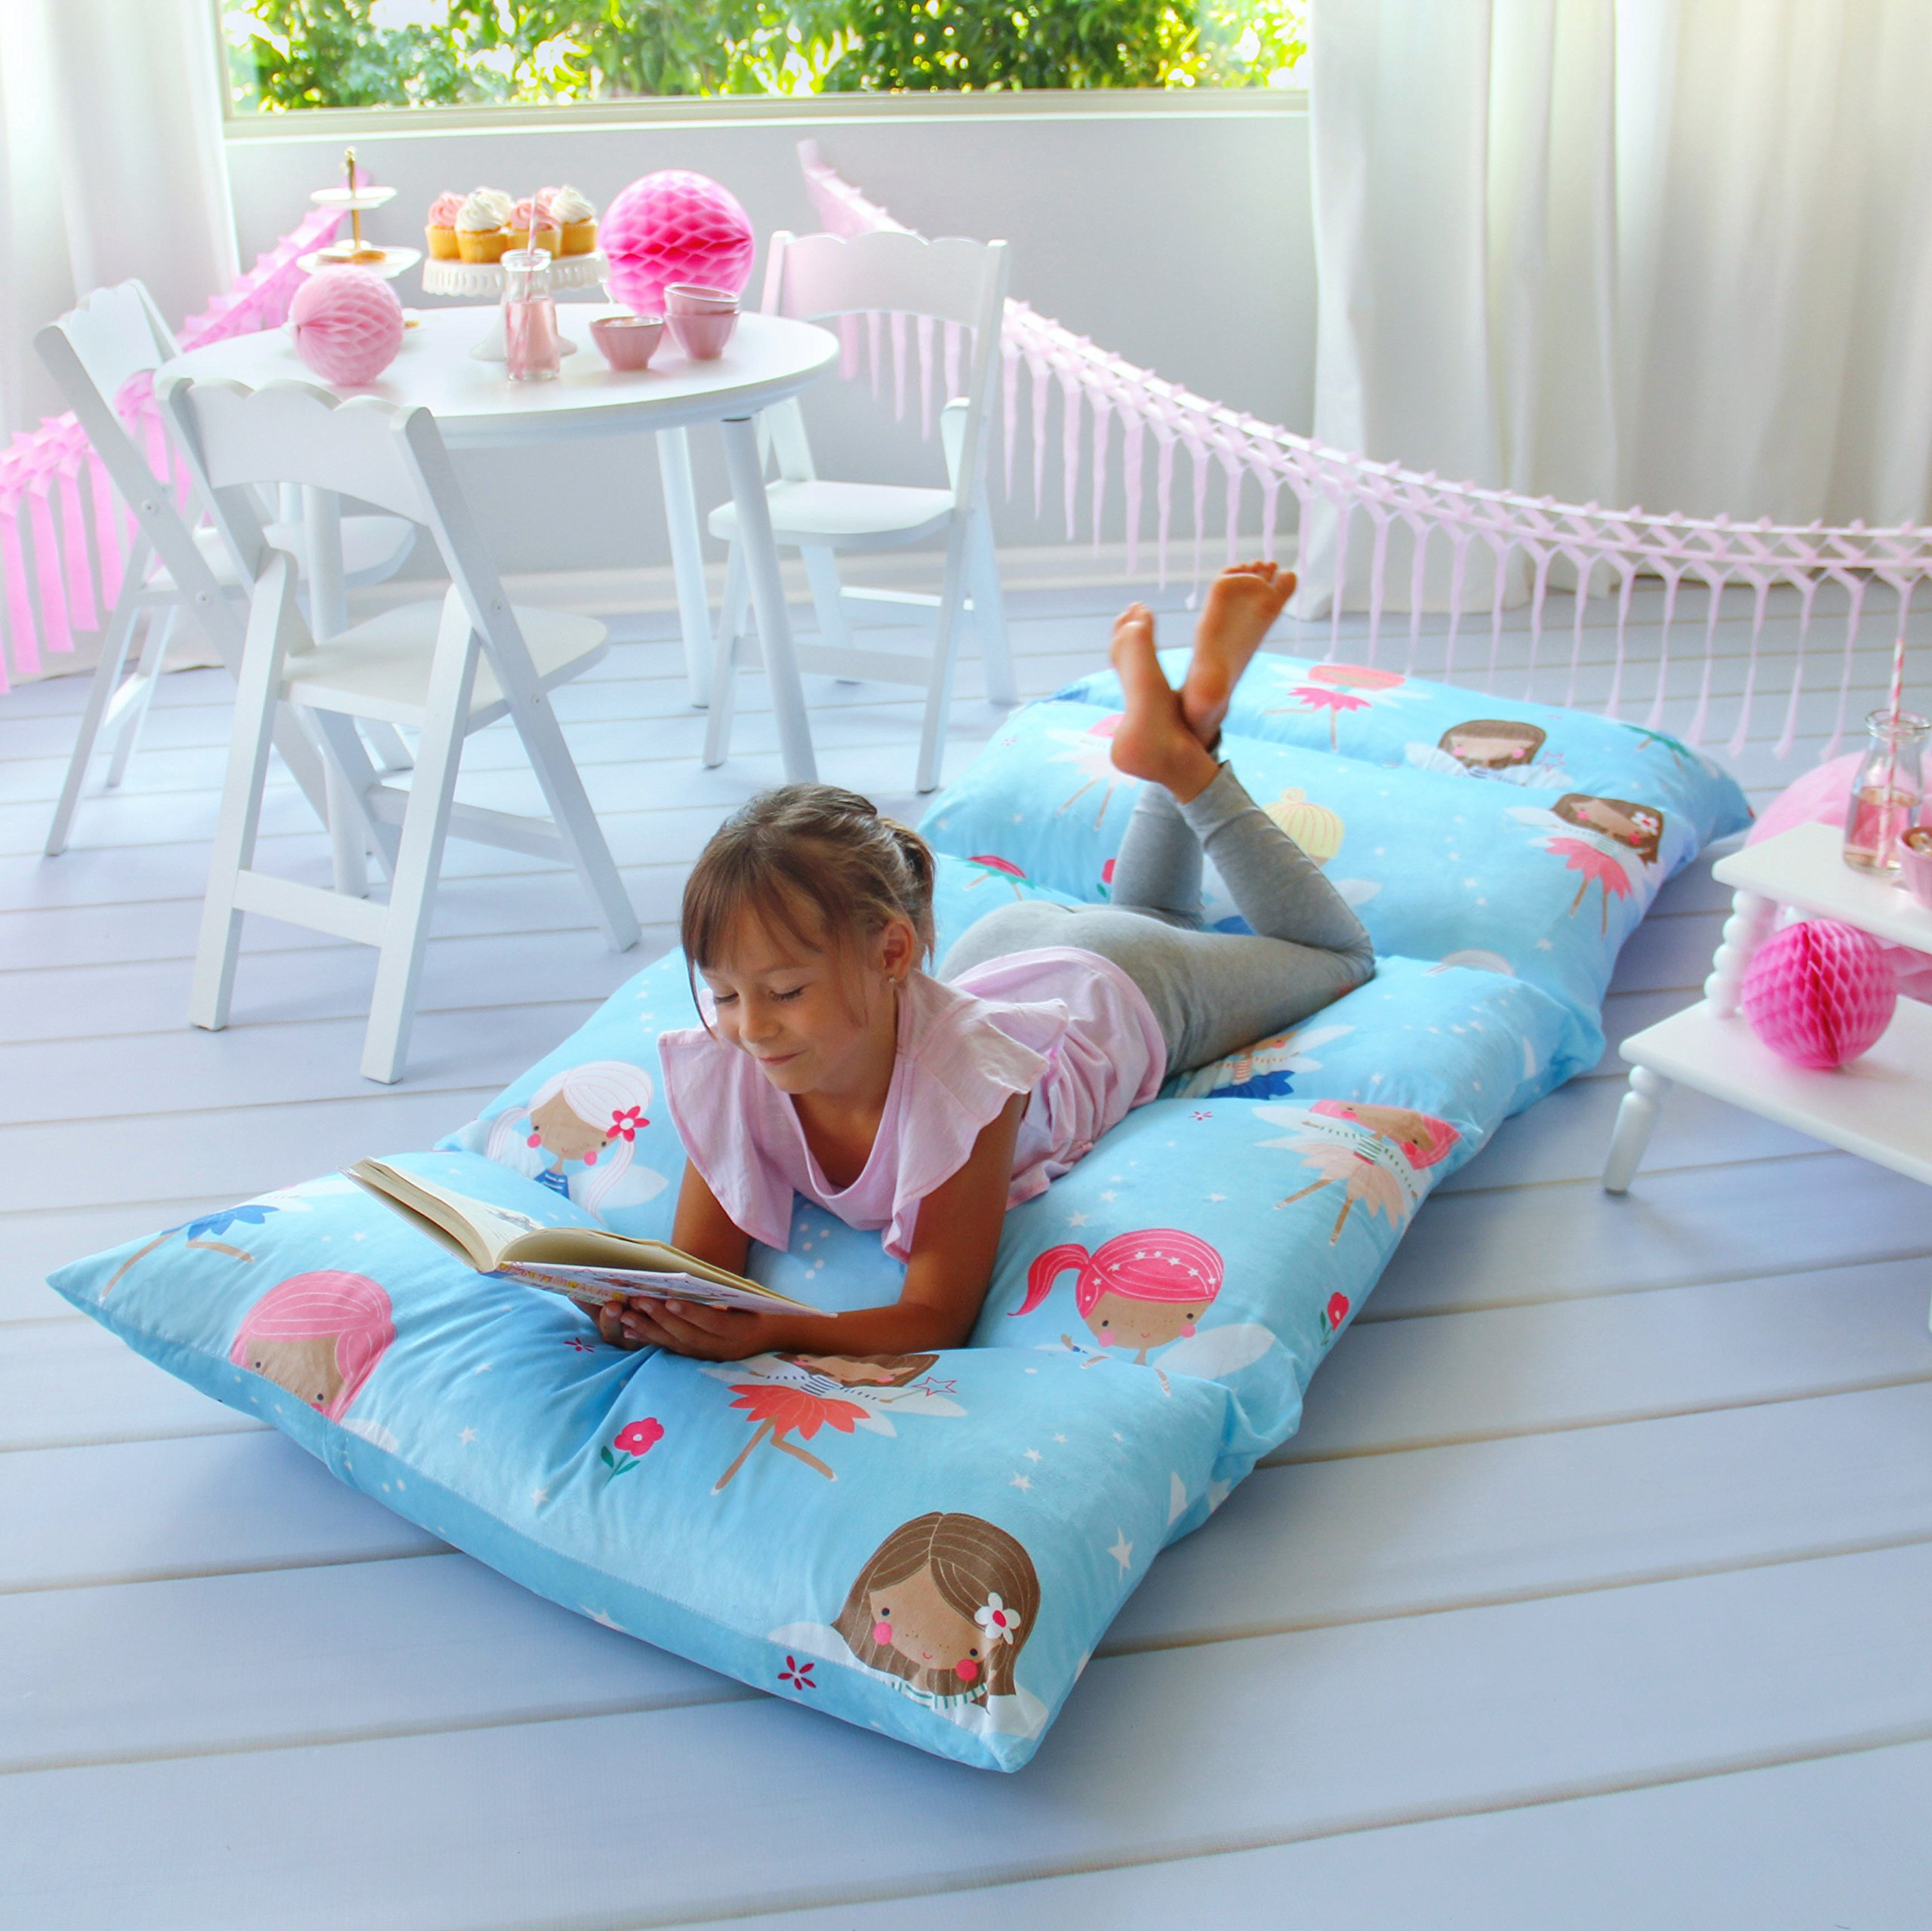 Amazon.com : Kid's Floor Pillow Bed Cover - Use as Nap Mat